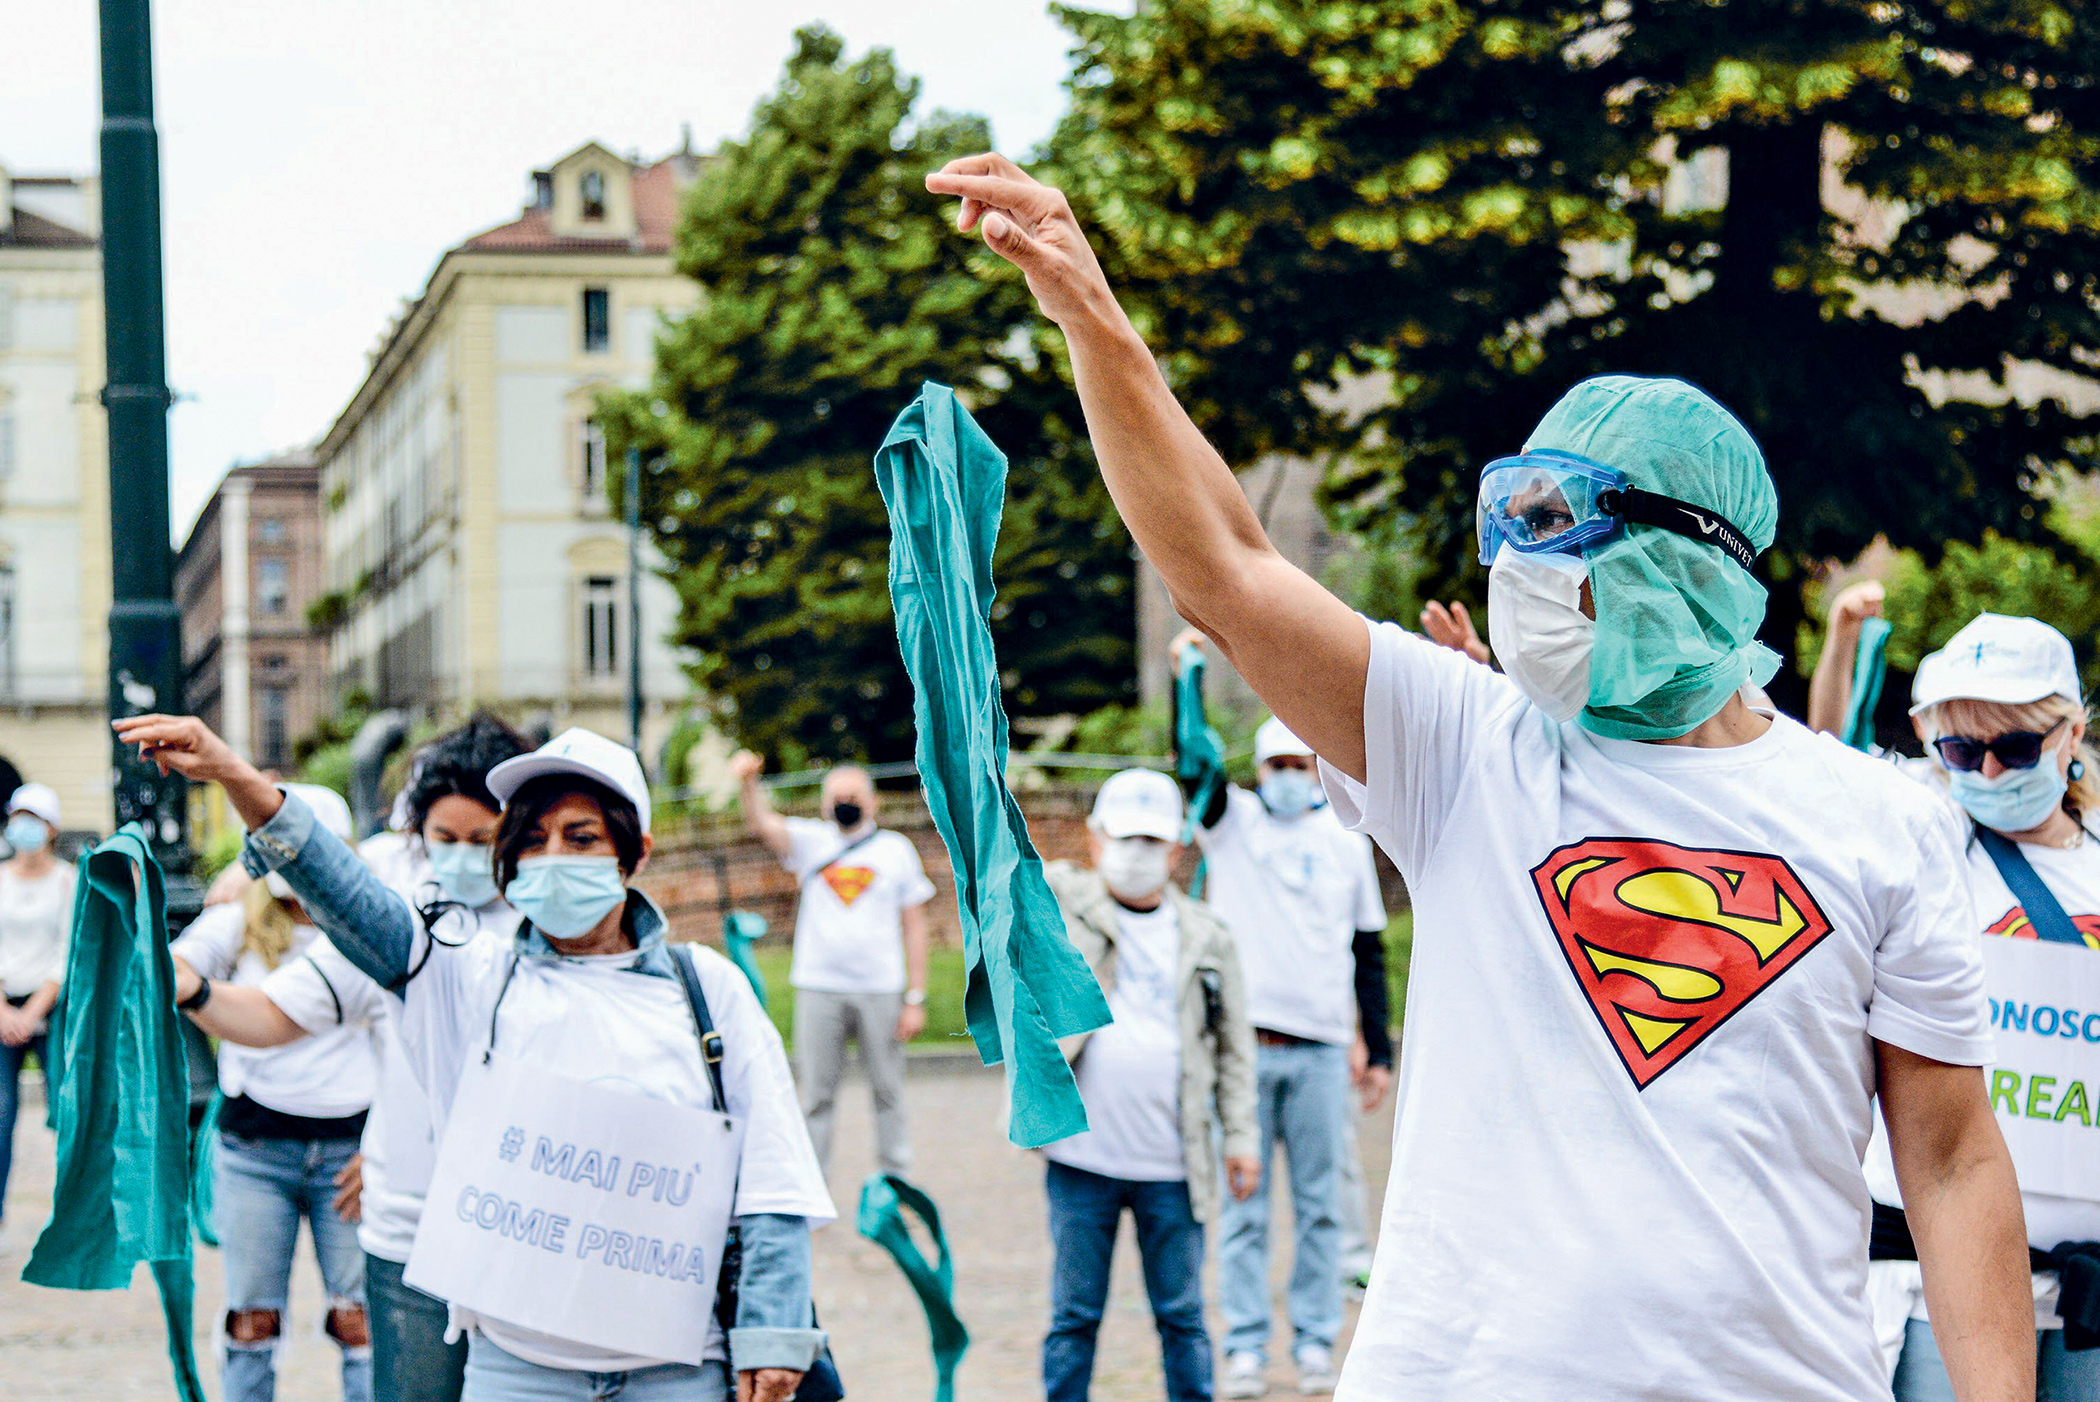 Nurses protest in Turin, Italy about the lack of safety at work during the Covid-19 pandemic.